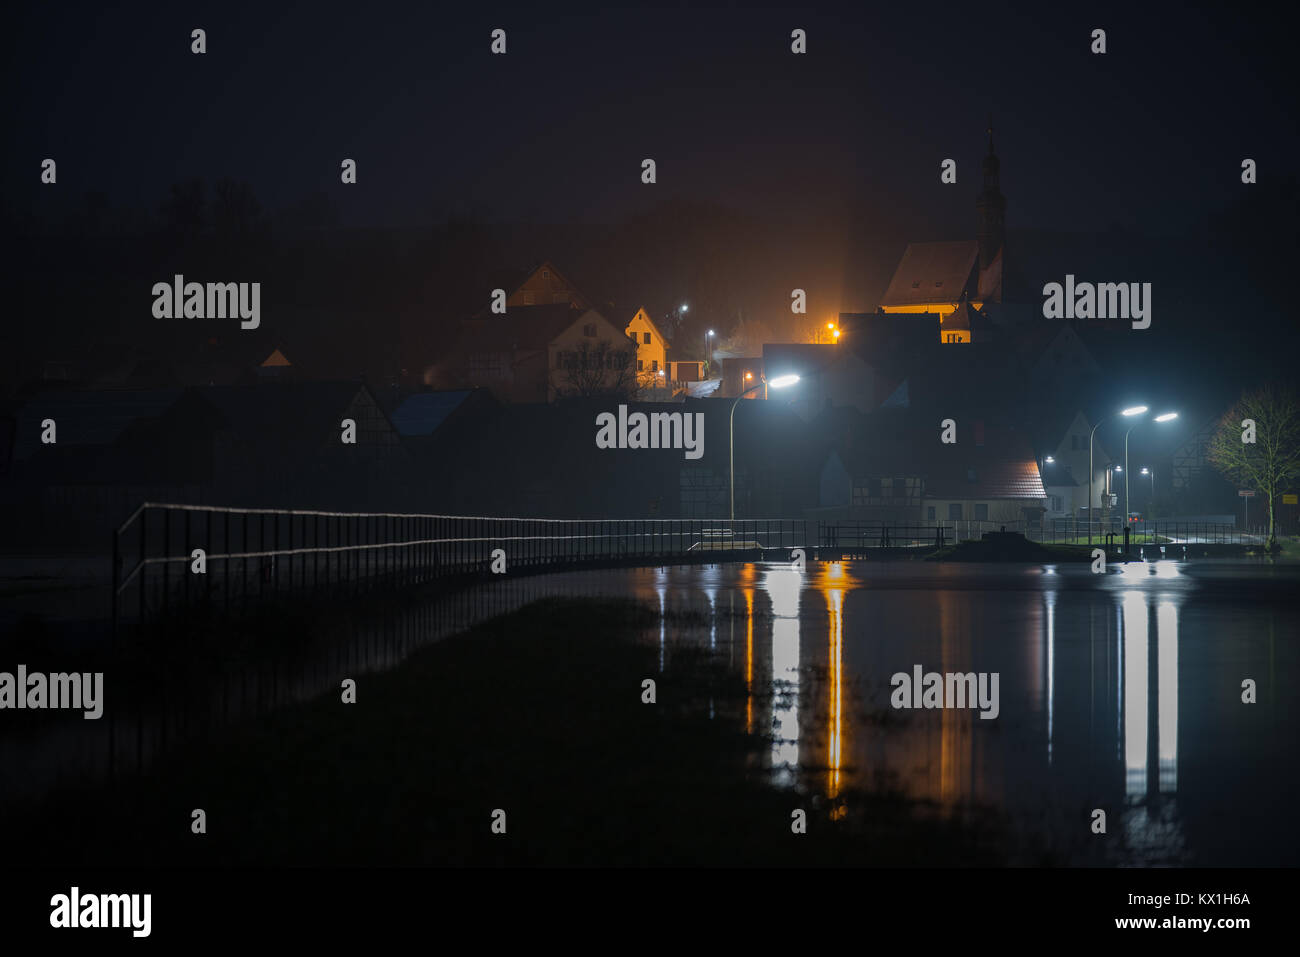 Gleusdorf, Germany. 6th Jan, 2018. The floodwater of the river Itz overflows the river banks flooding a nearby road - Stock Image